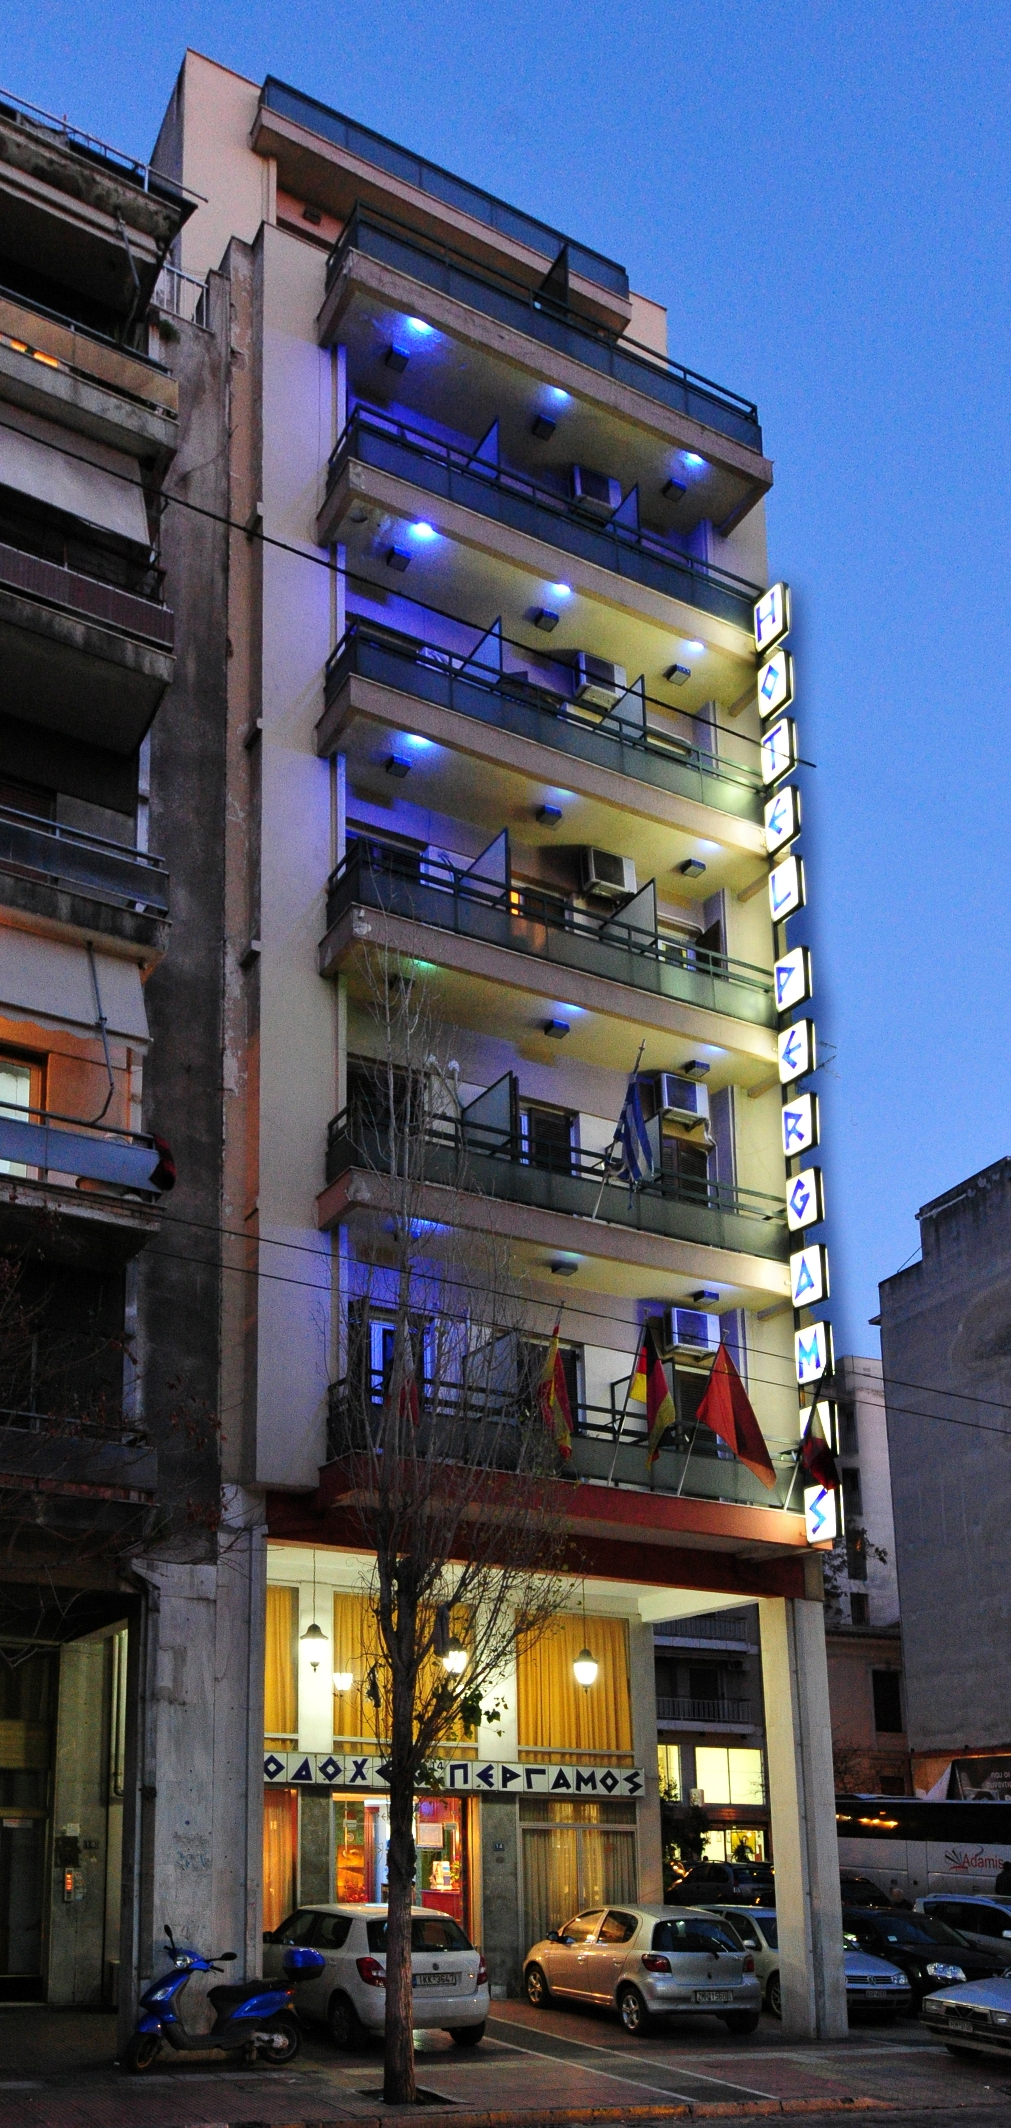 Hotel Pergamos